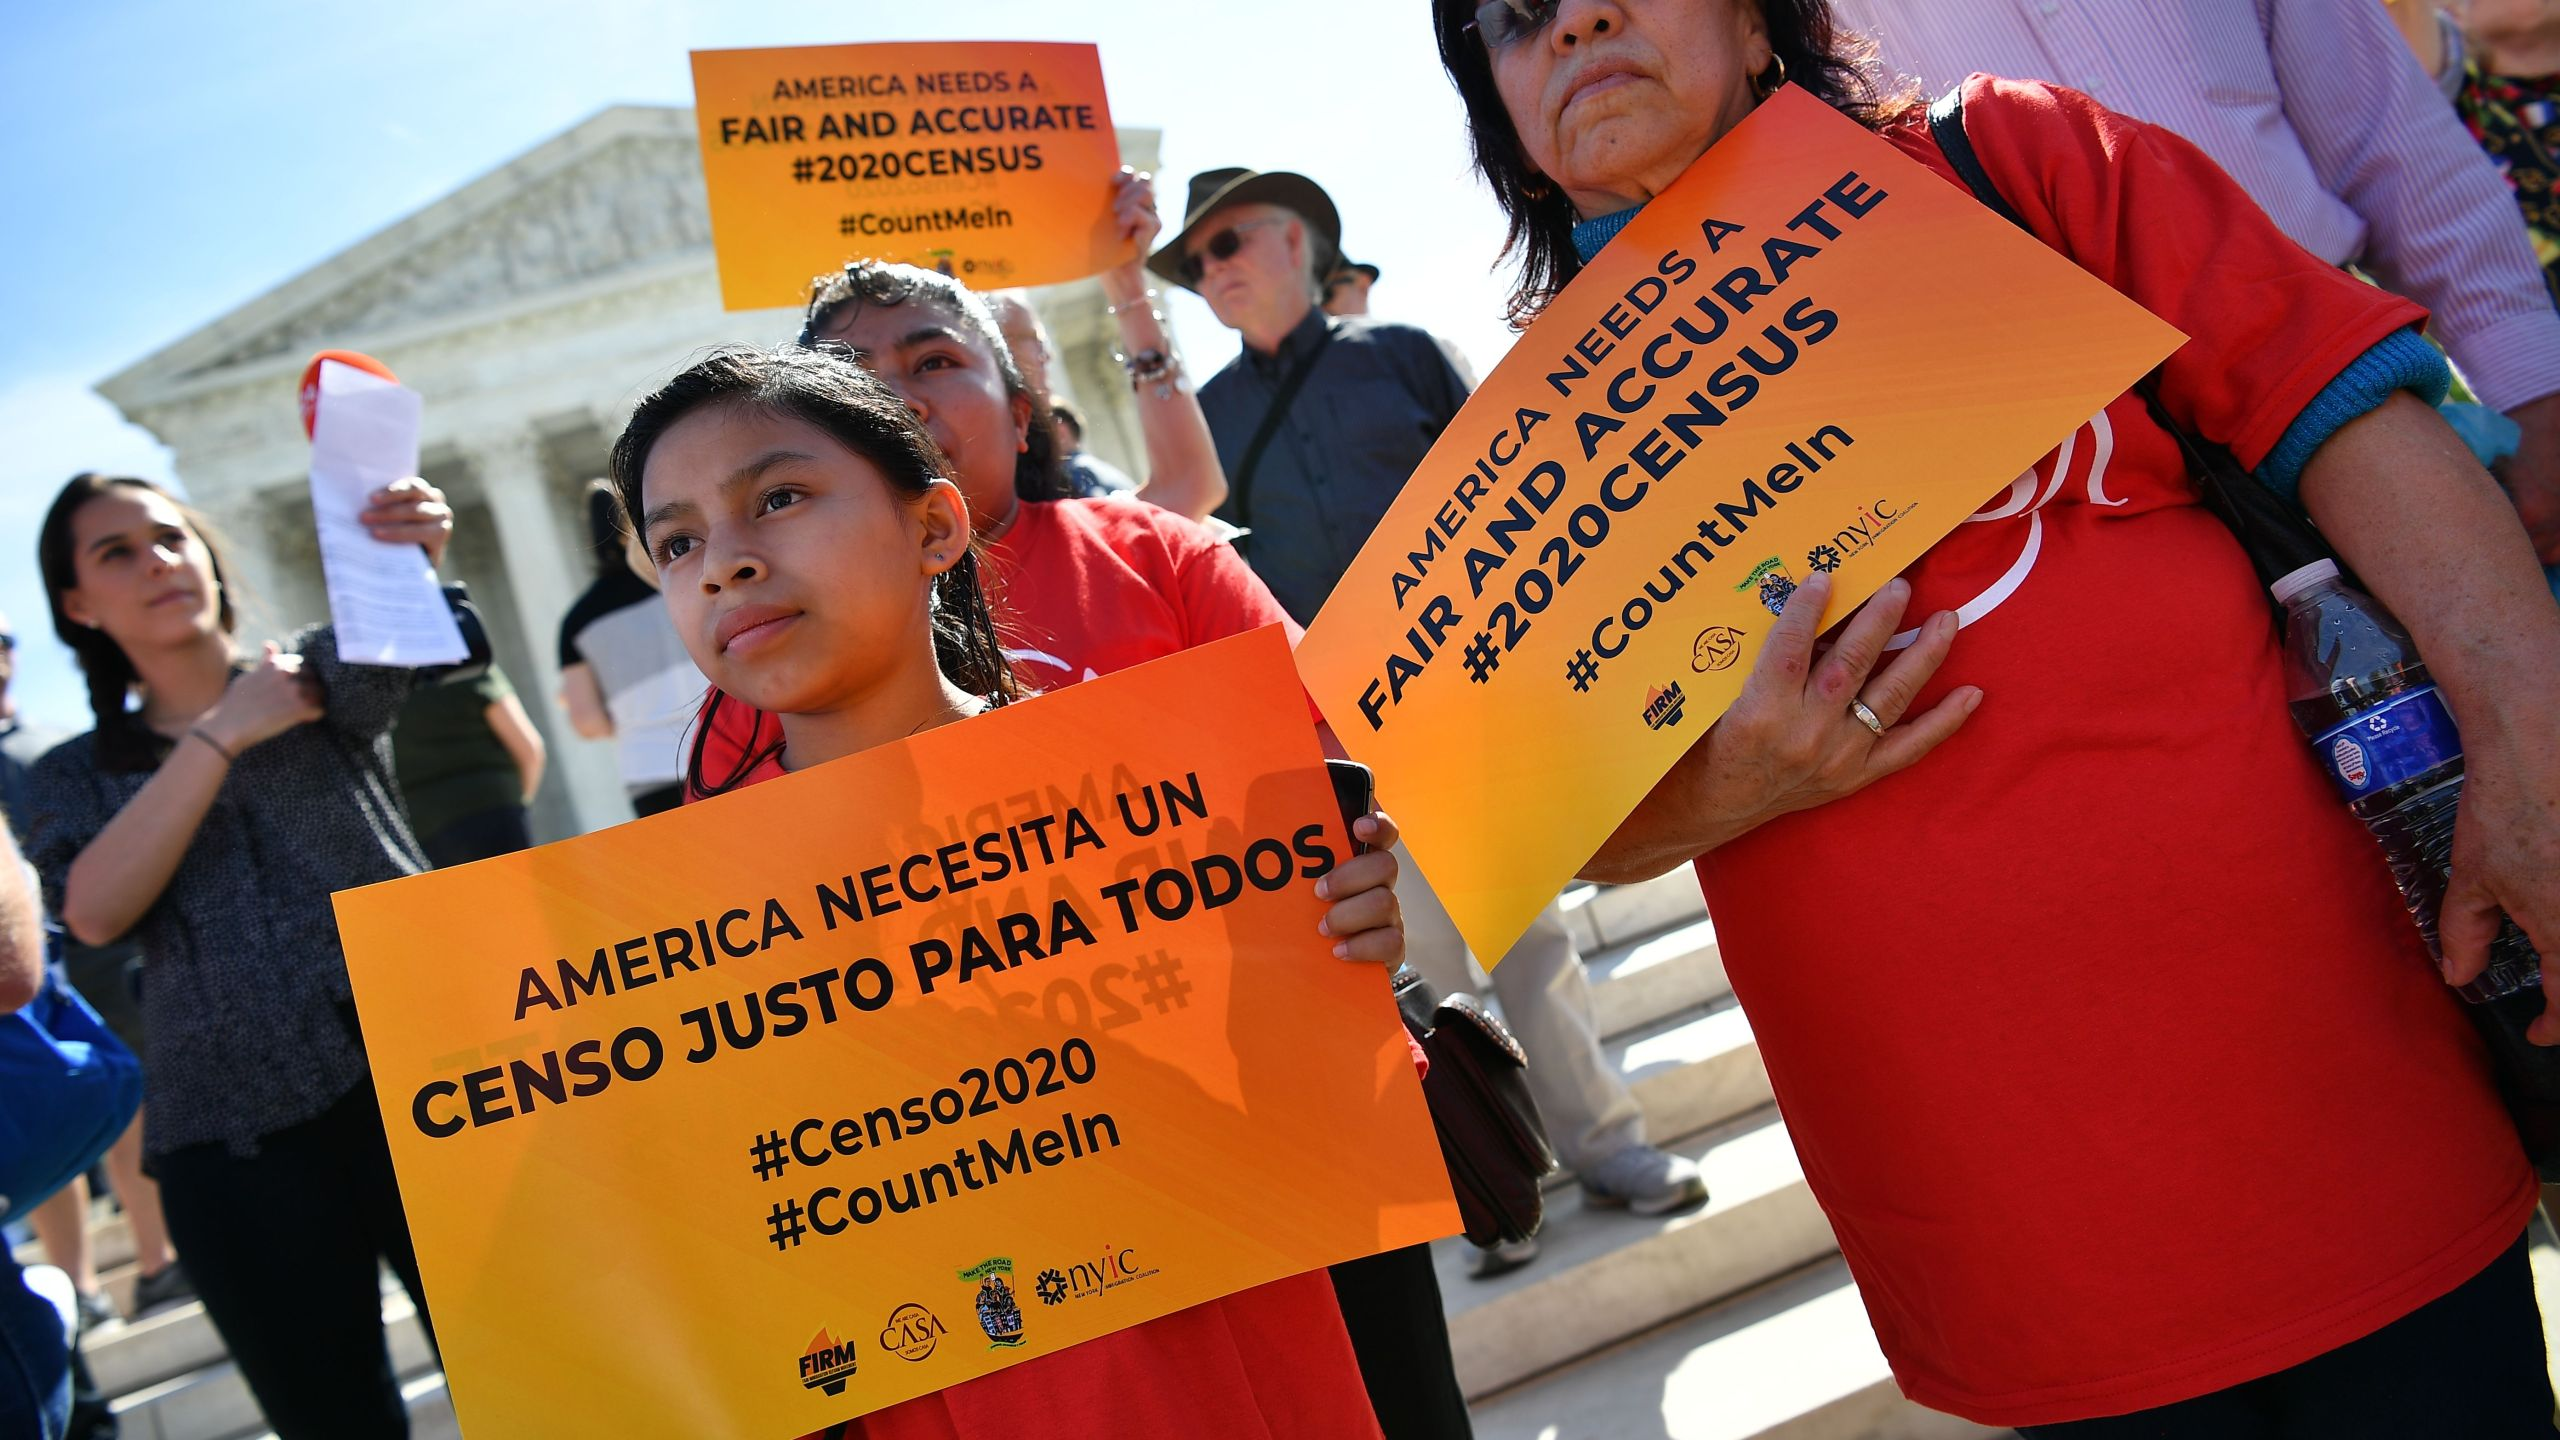 Demonstrators rally at the Supreme Court in Washington, D.C., on April 23, 2019, to protest a proposal to add a citizenship question in the 2020 Census.(Credit: MANDEL NGAN/AFP/Getty Images)